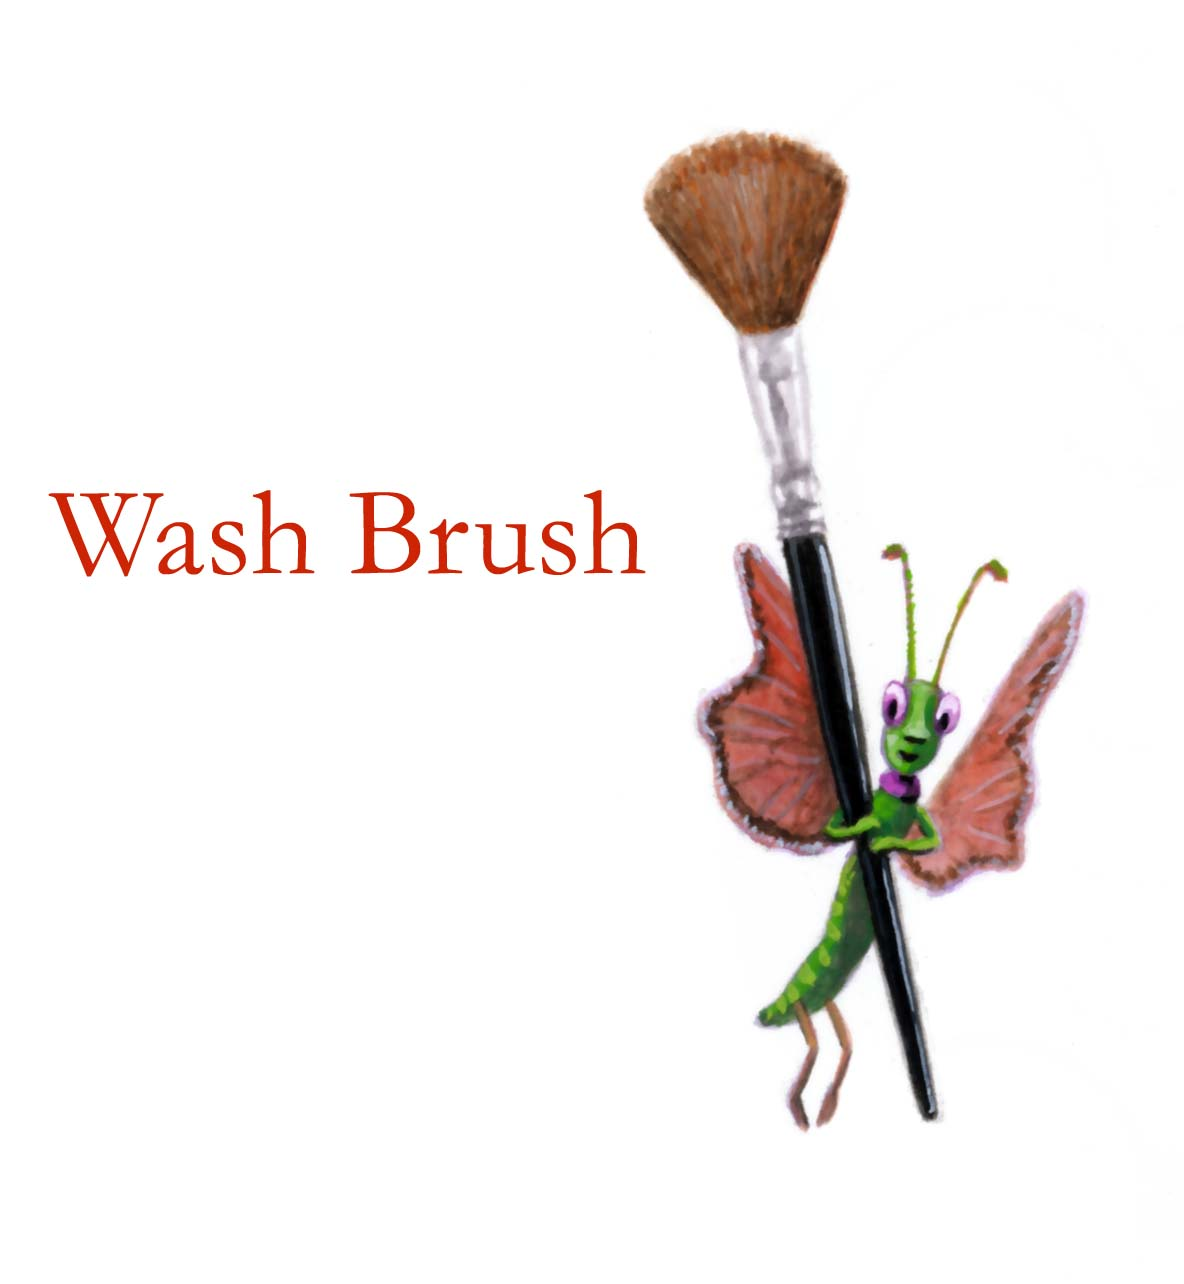 Busy Bugs-wash brush.jpg